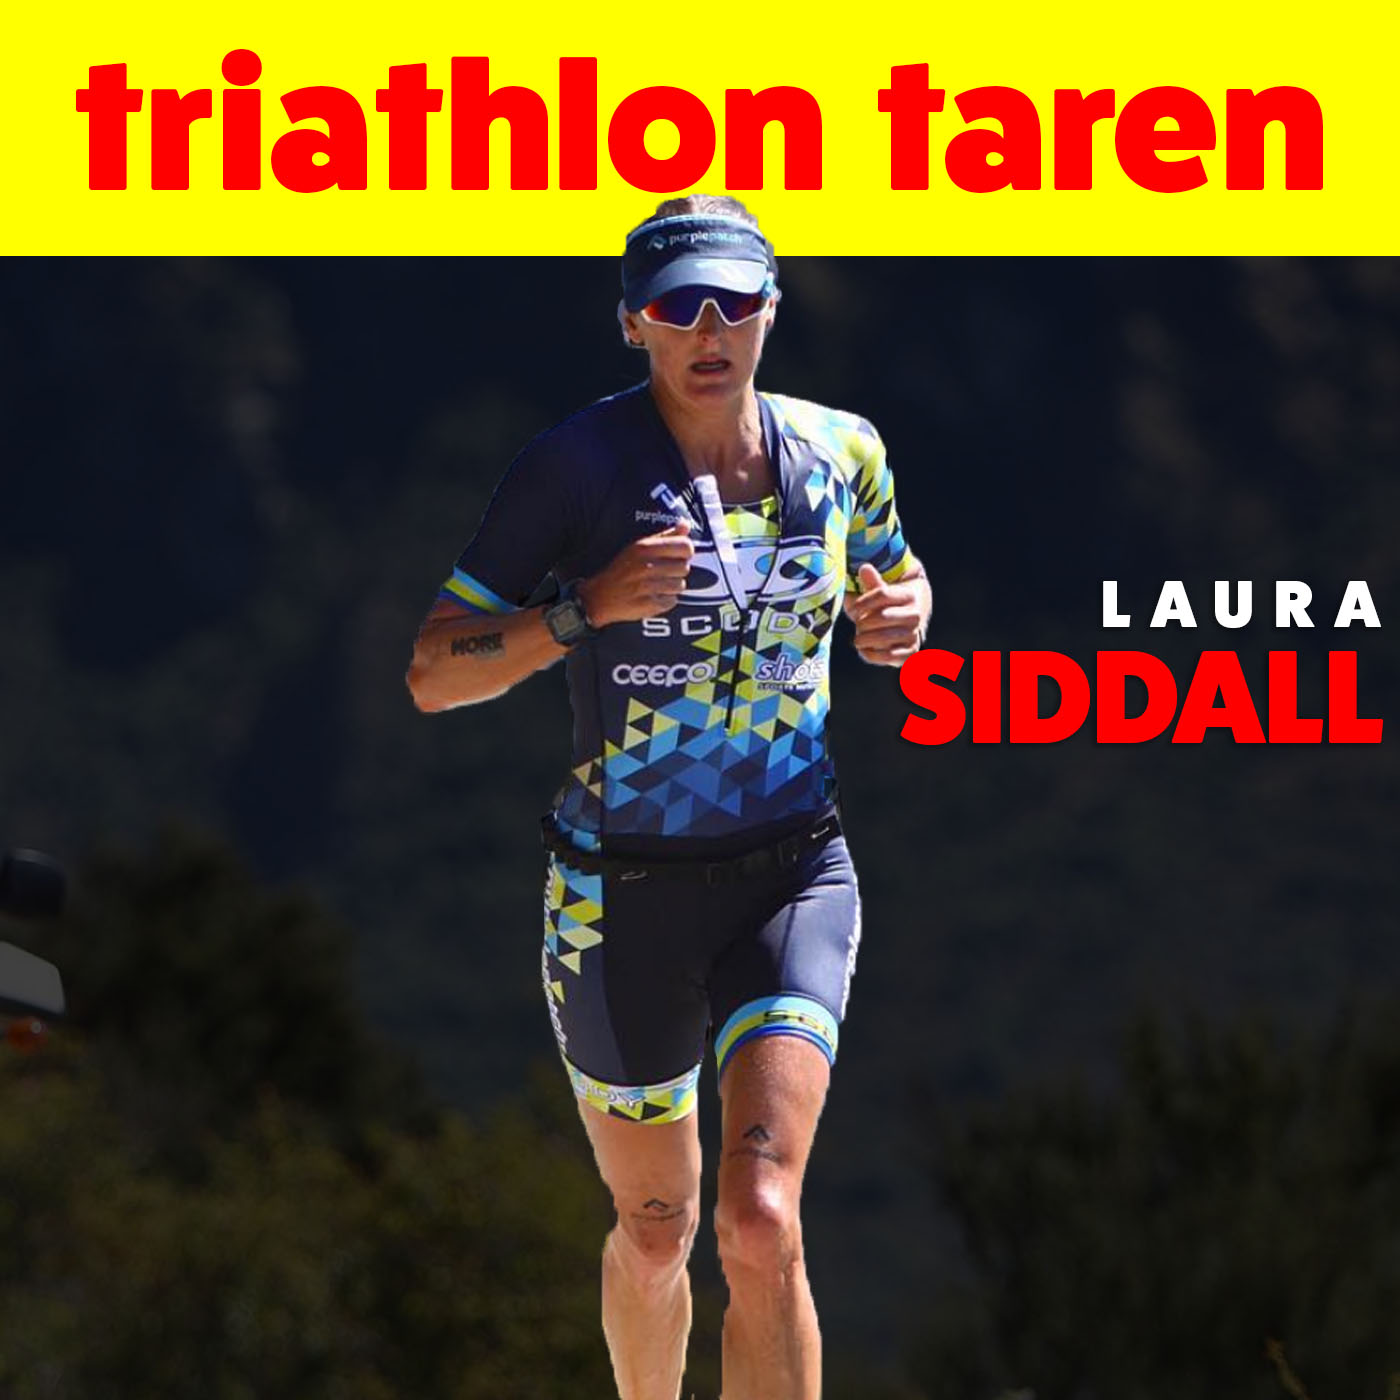 Laura Siddall: Choosing Challenge vs Ironman Races & Becoming a Pro Triathlete as an Adult